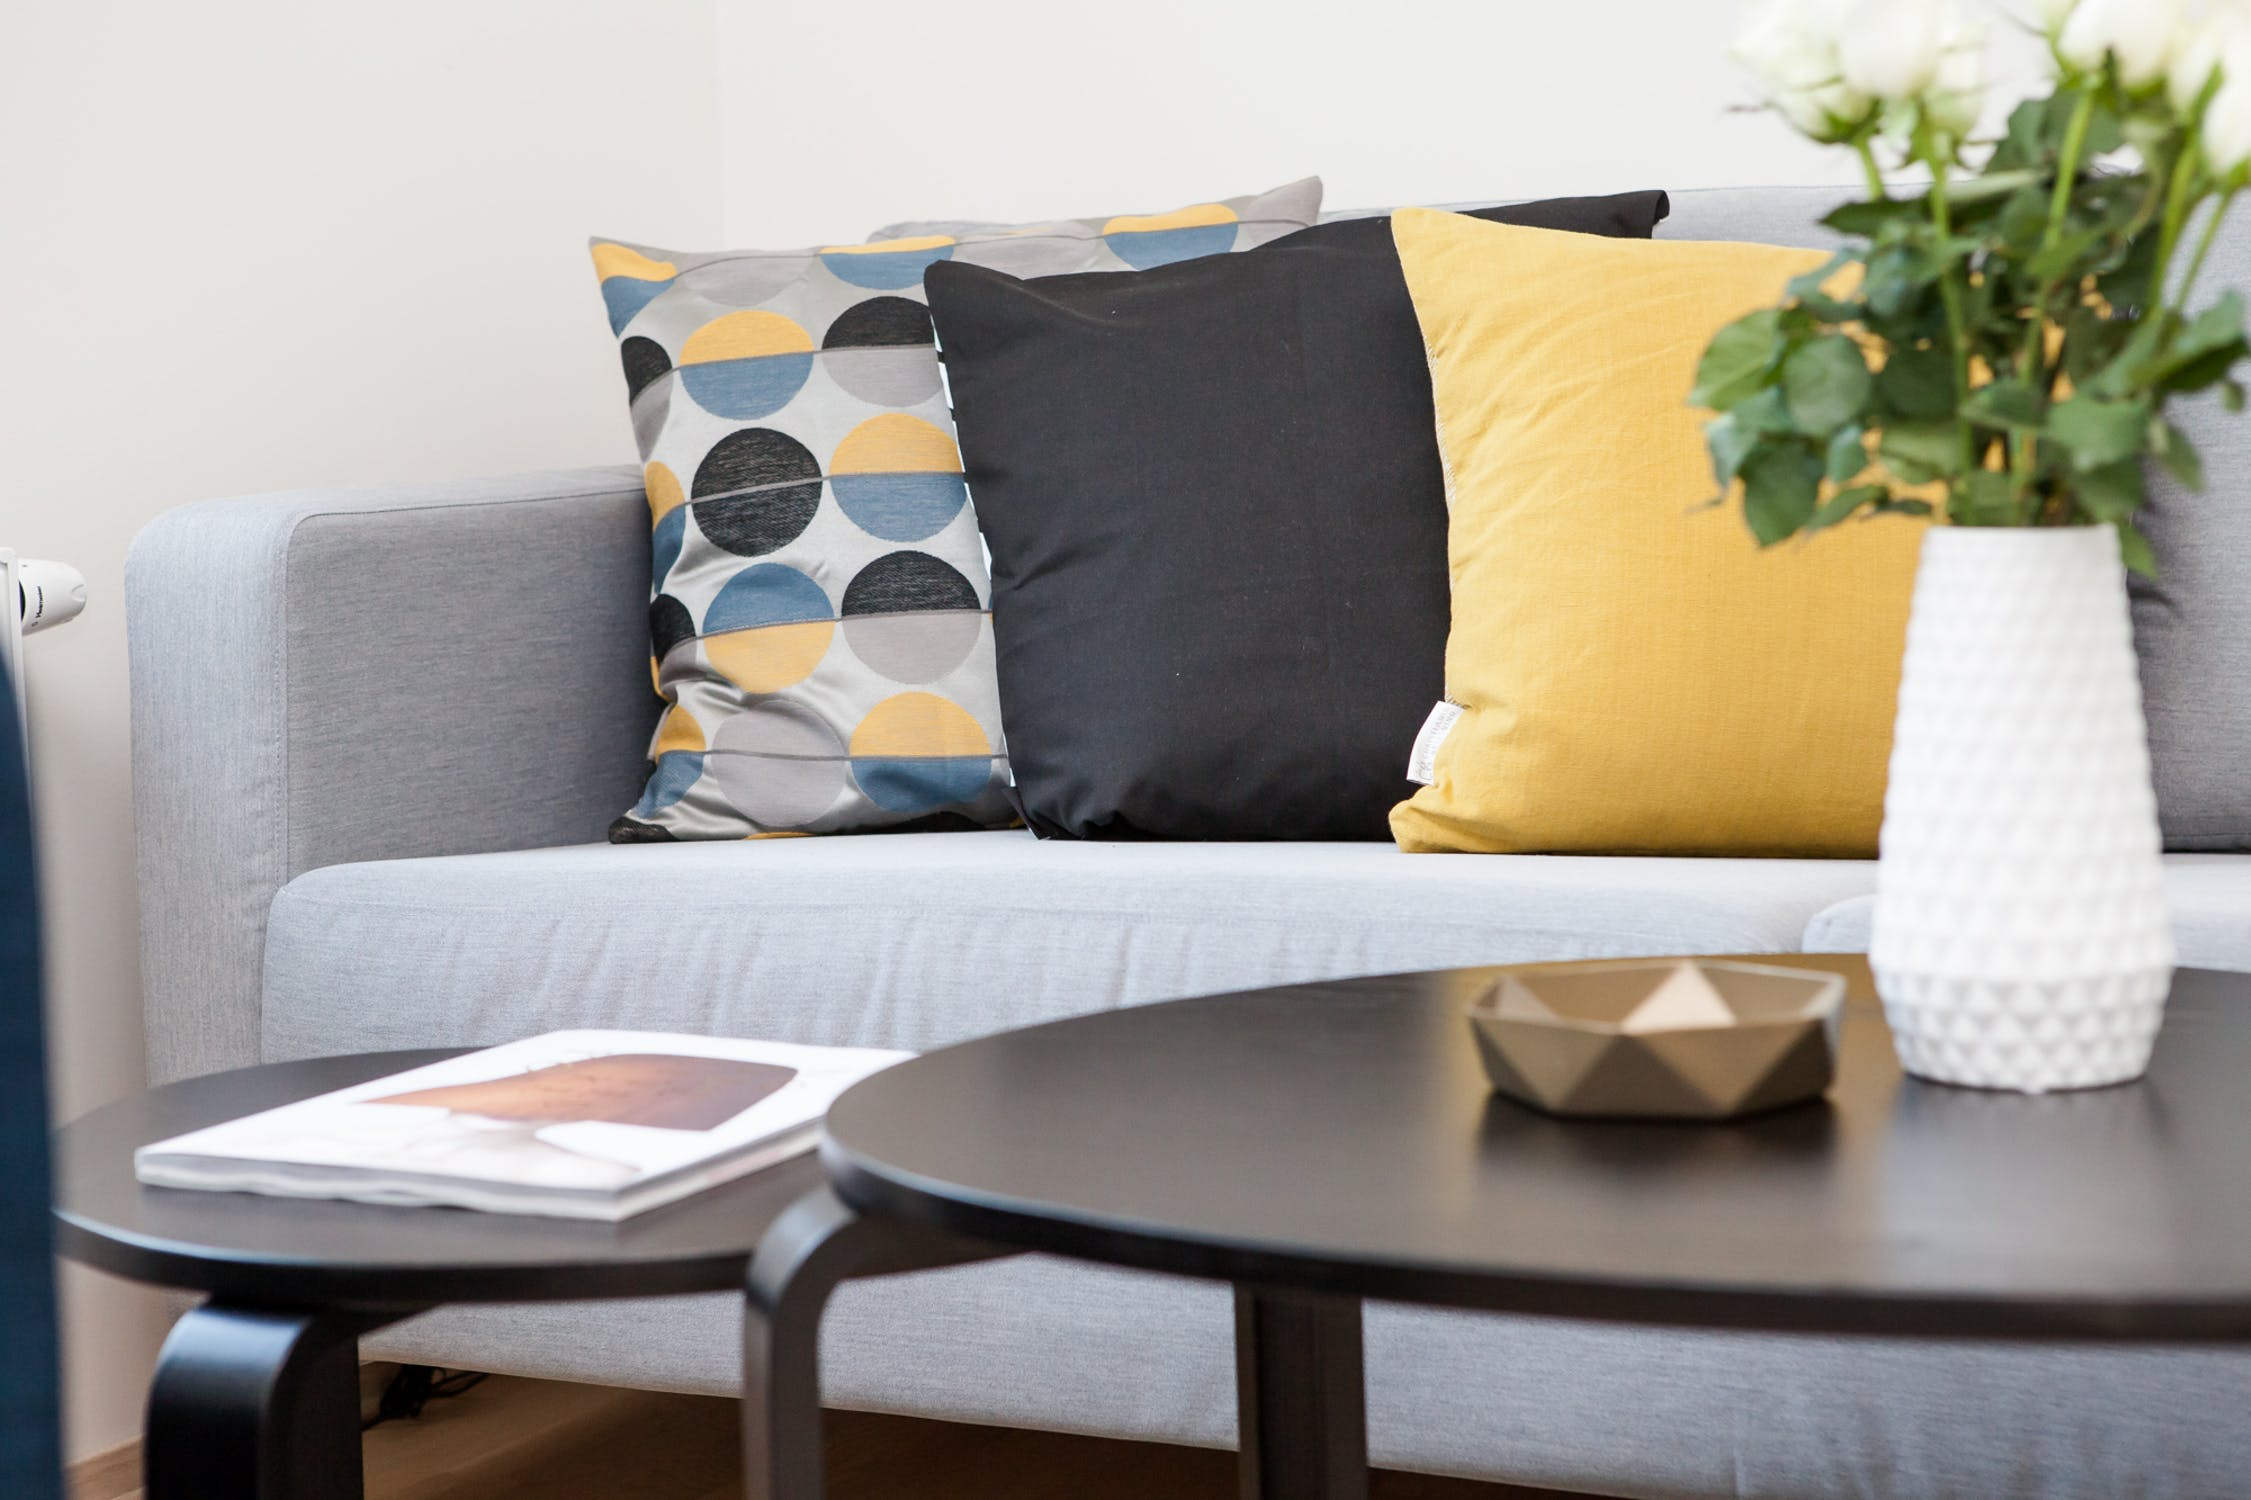 5 COMMON BUT AVOIDABLE HOME DECORATING BLUNDERS